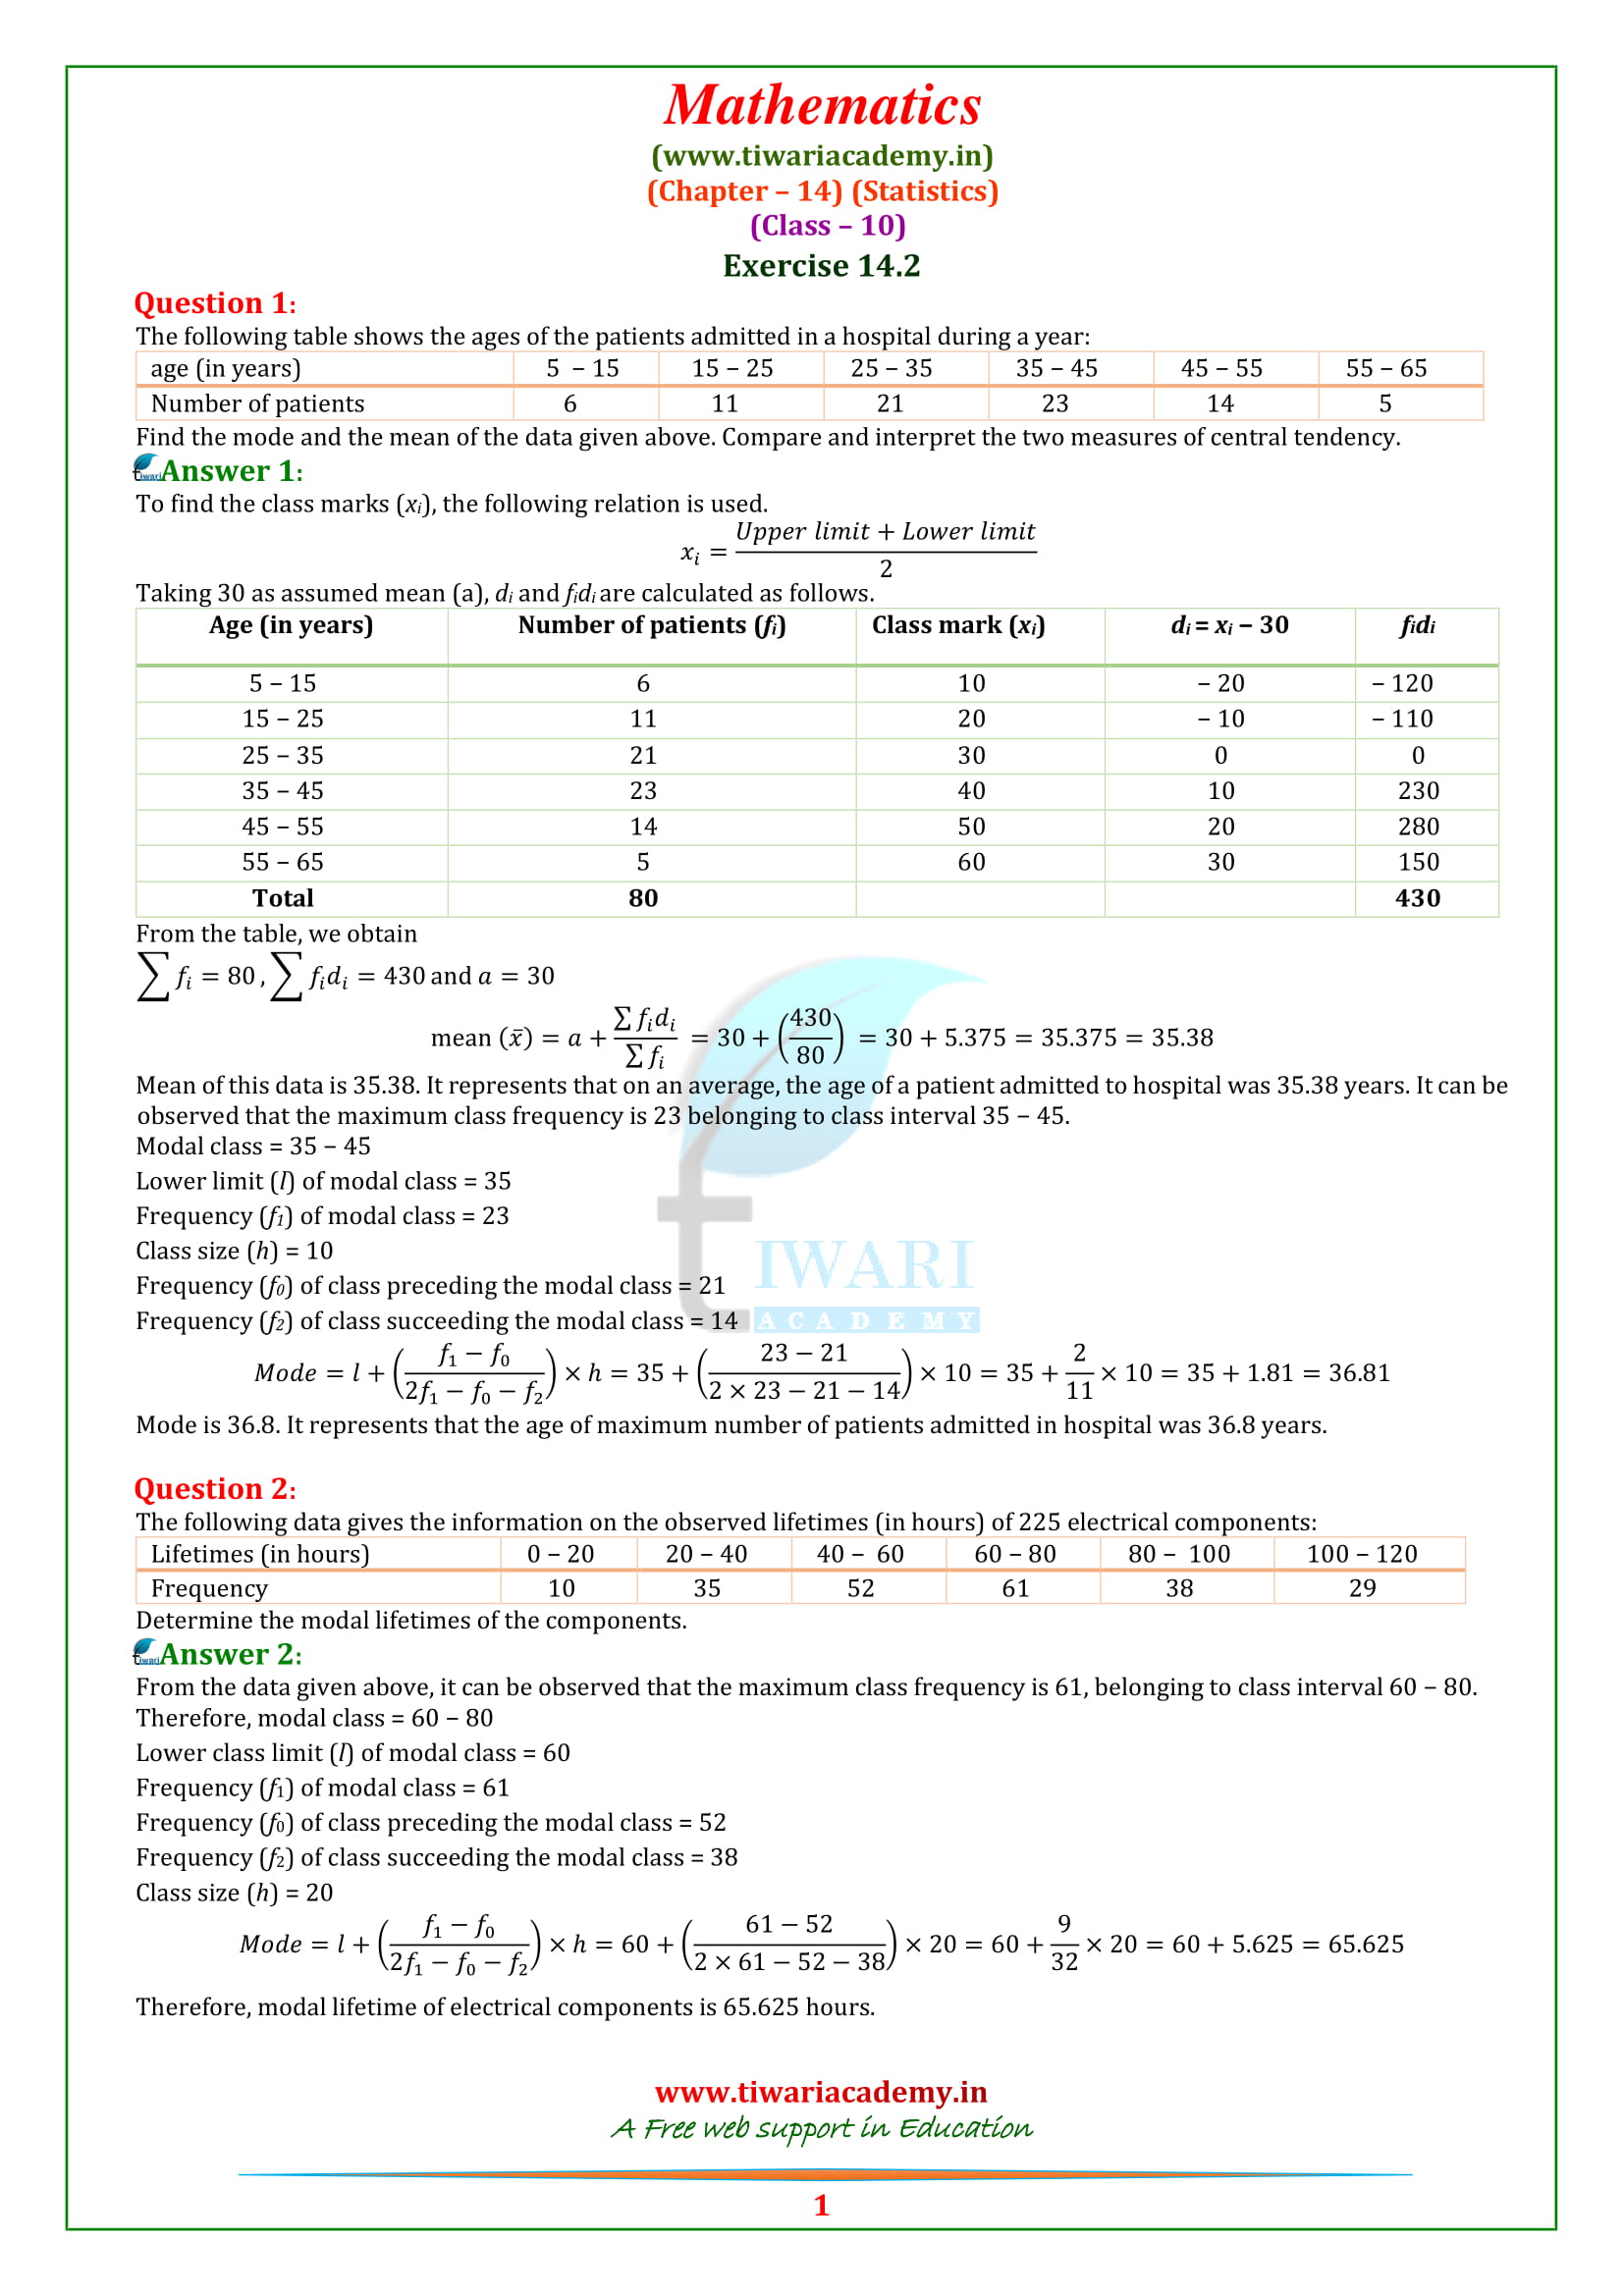 NCERT Solutions for Class 10 Maths Chapter 14 Exercise 14.2 Statistics